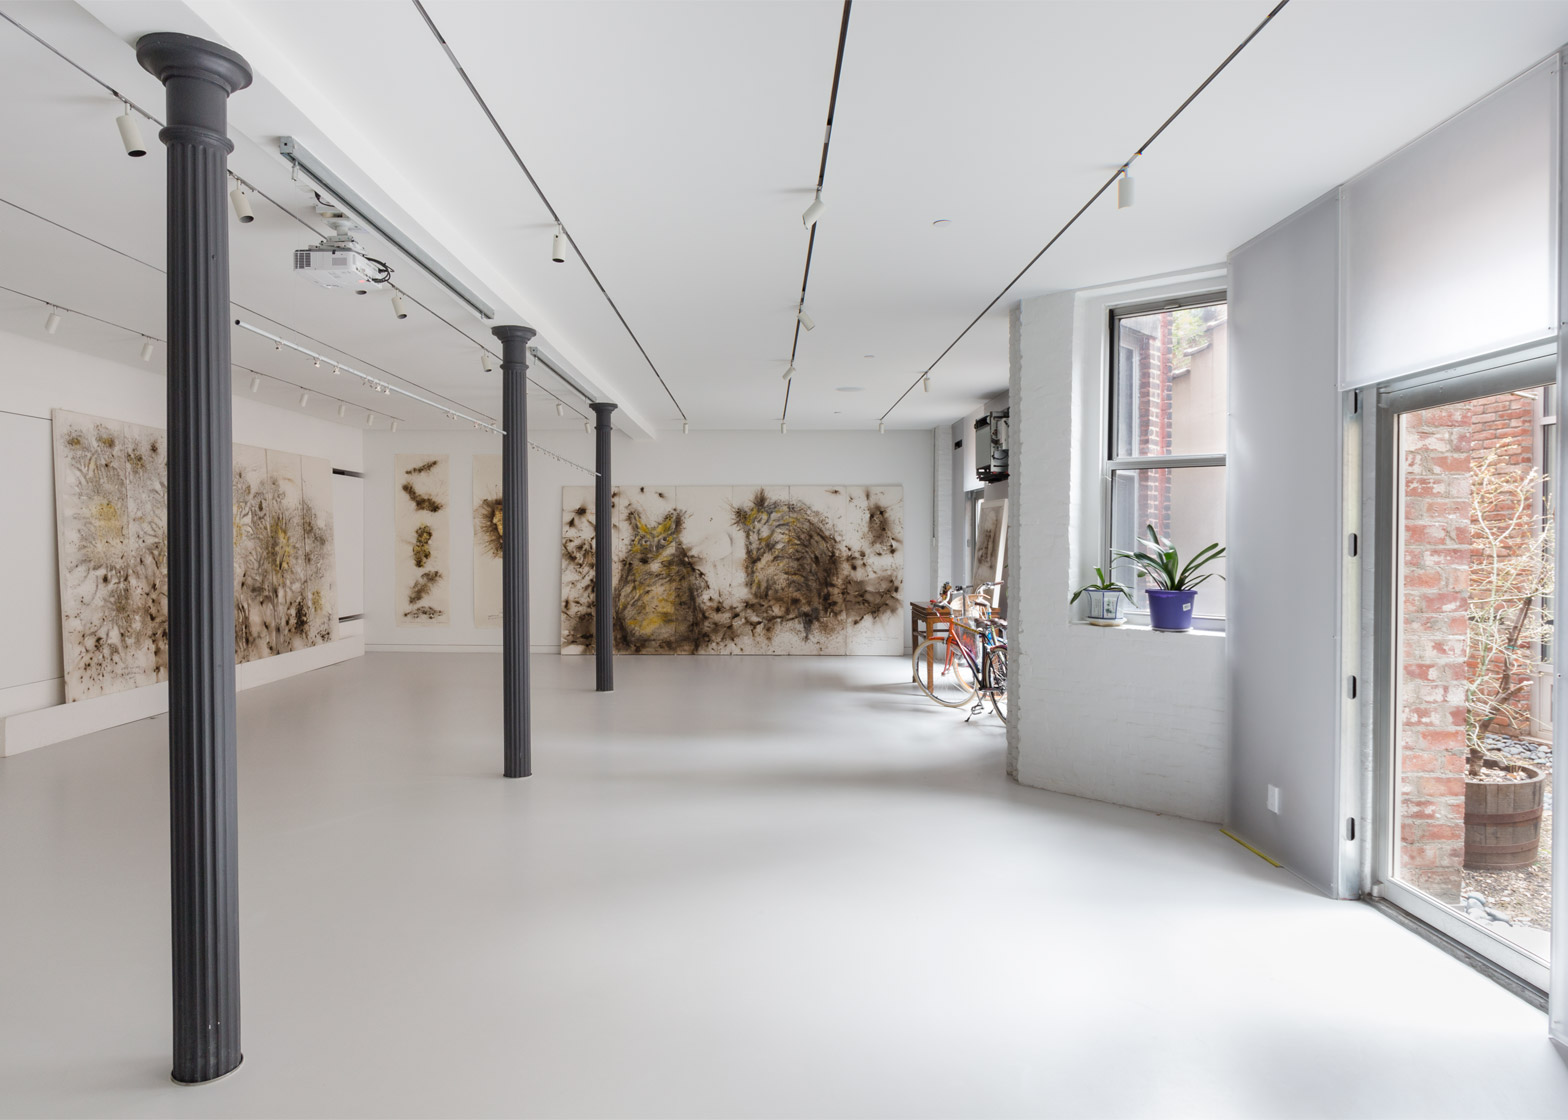 OMA creates a light-filled New York studio for artist Cai Guo-Qiang